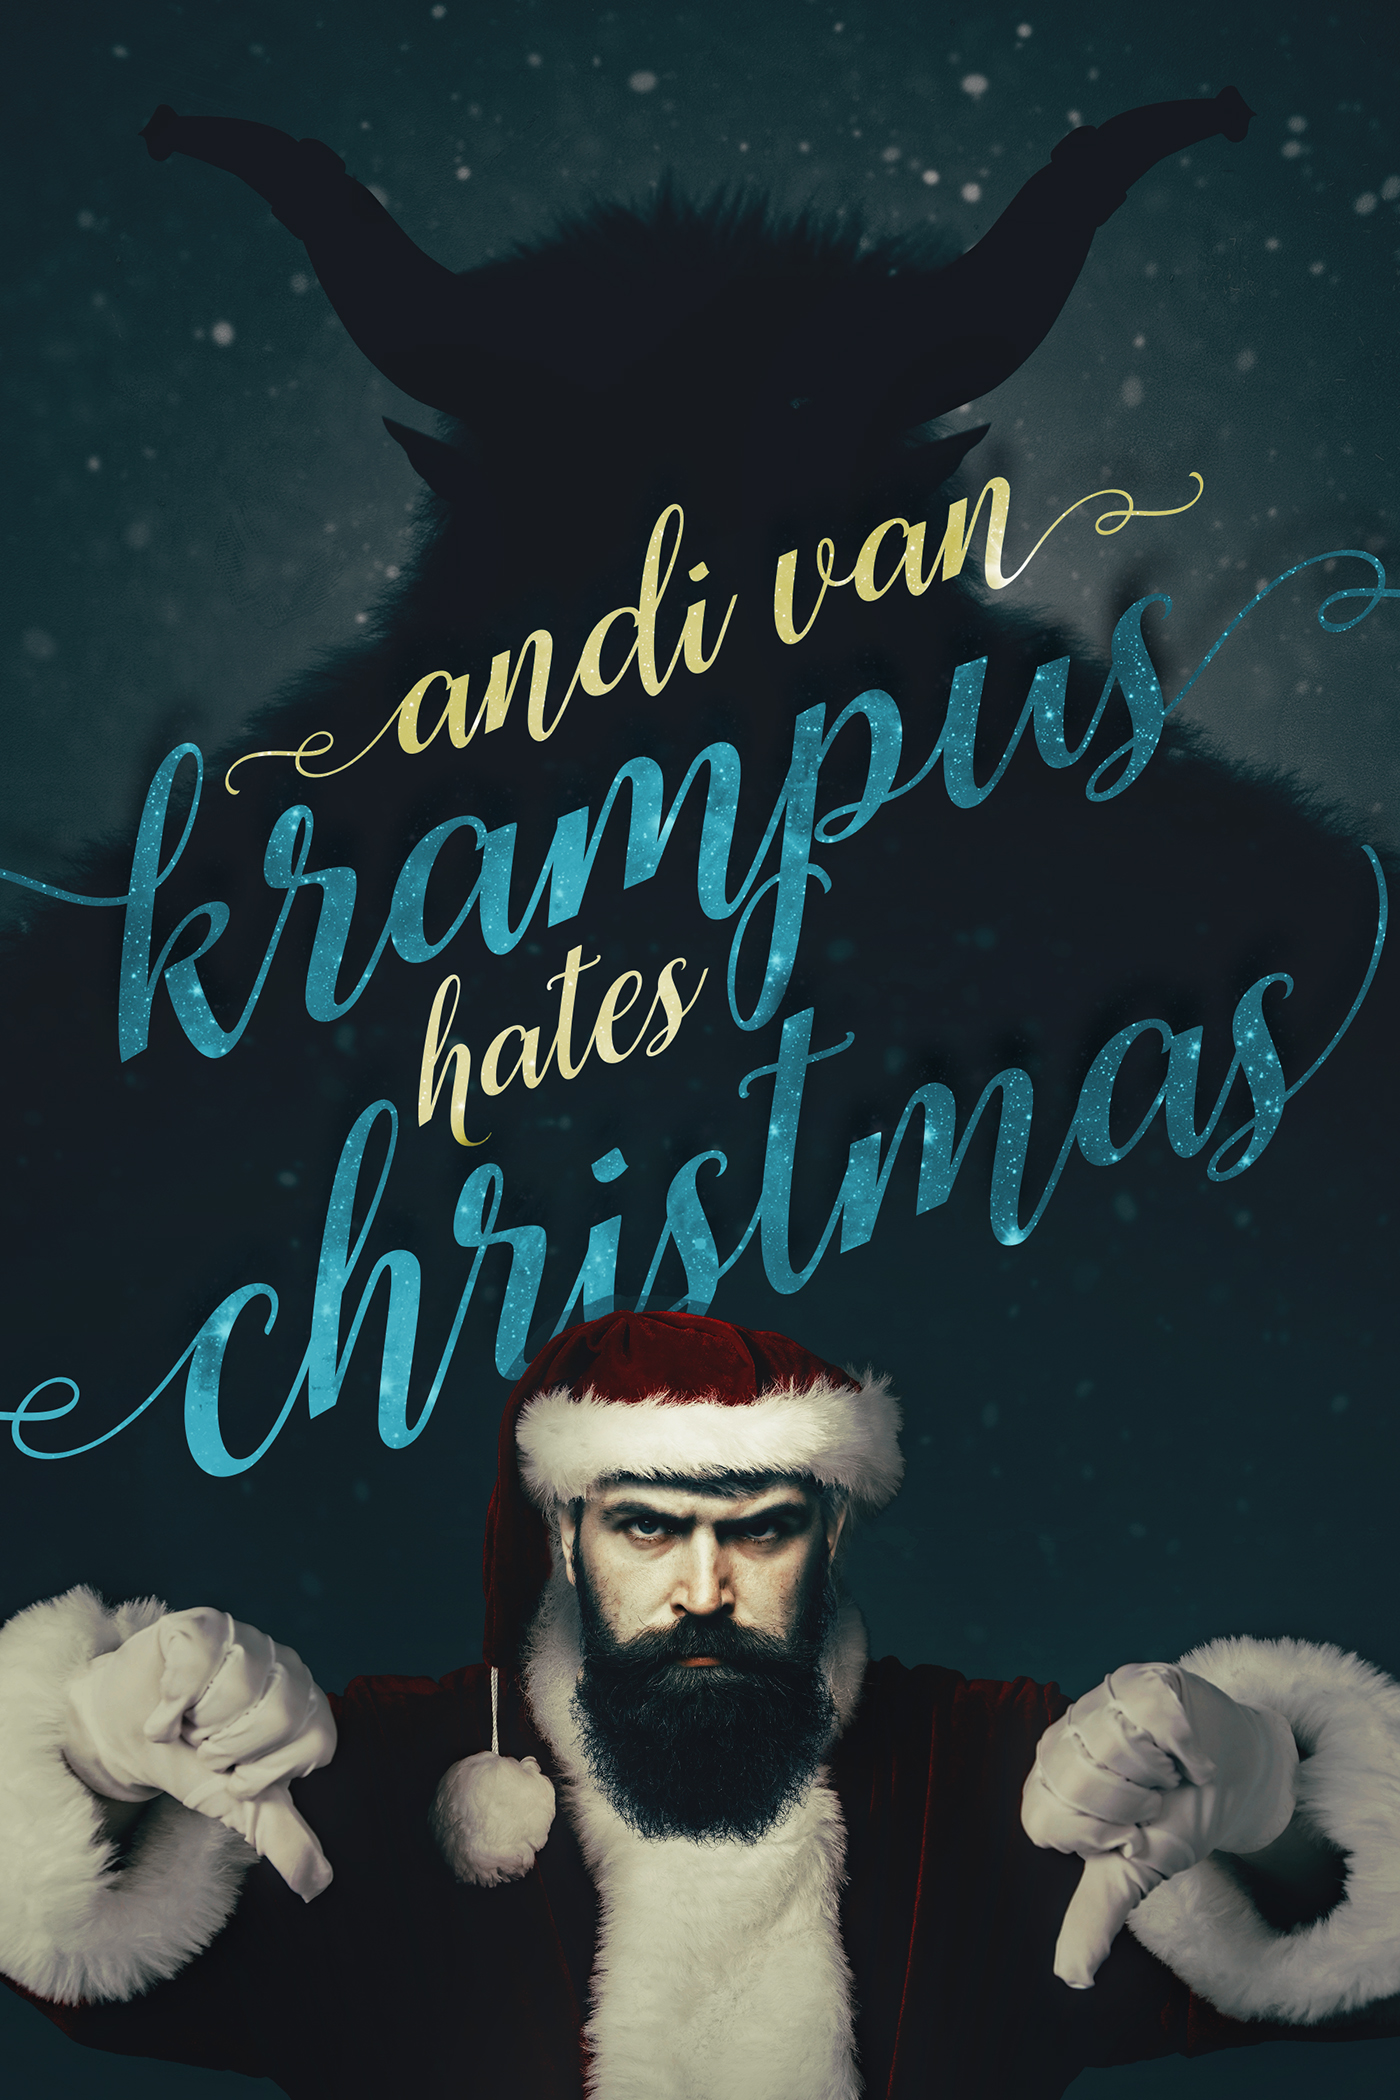 Krampus Hates Christmas